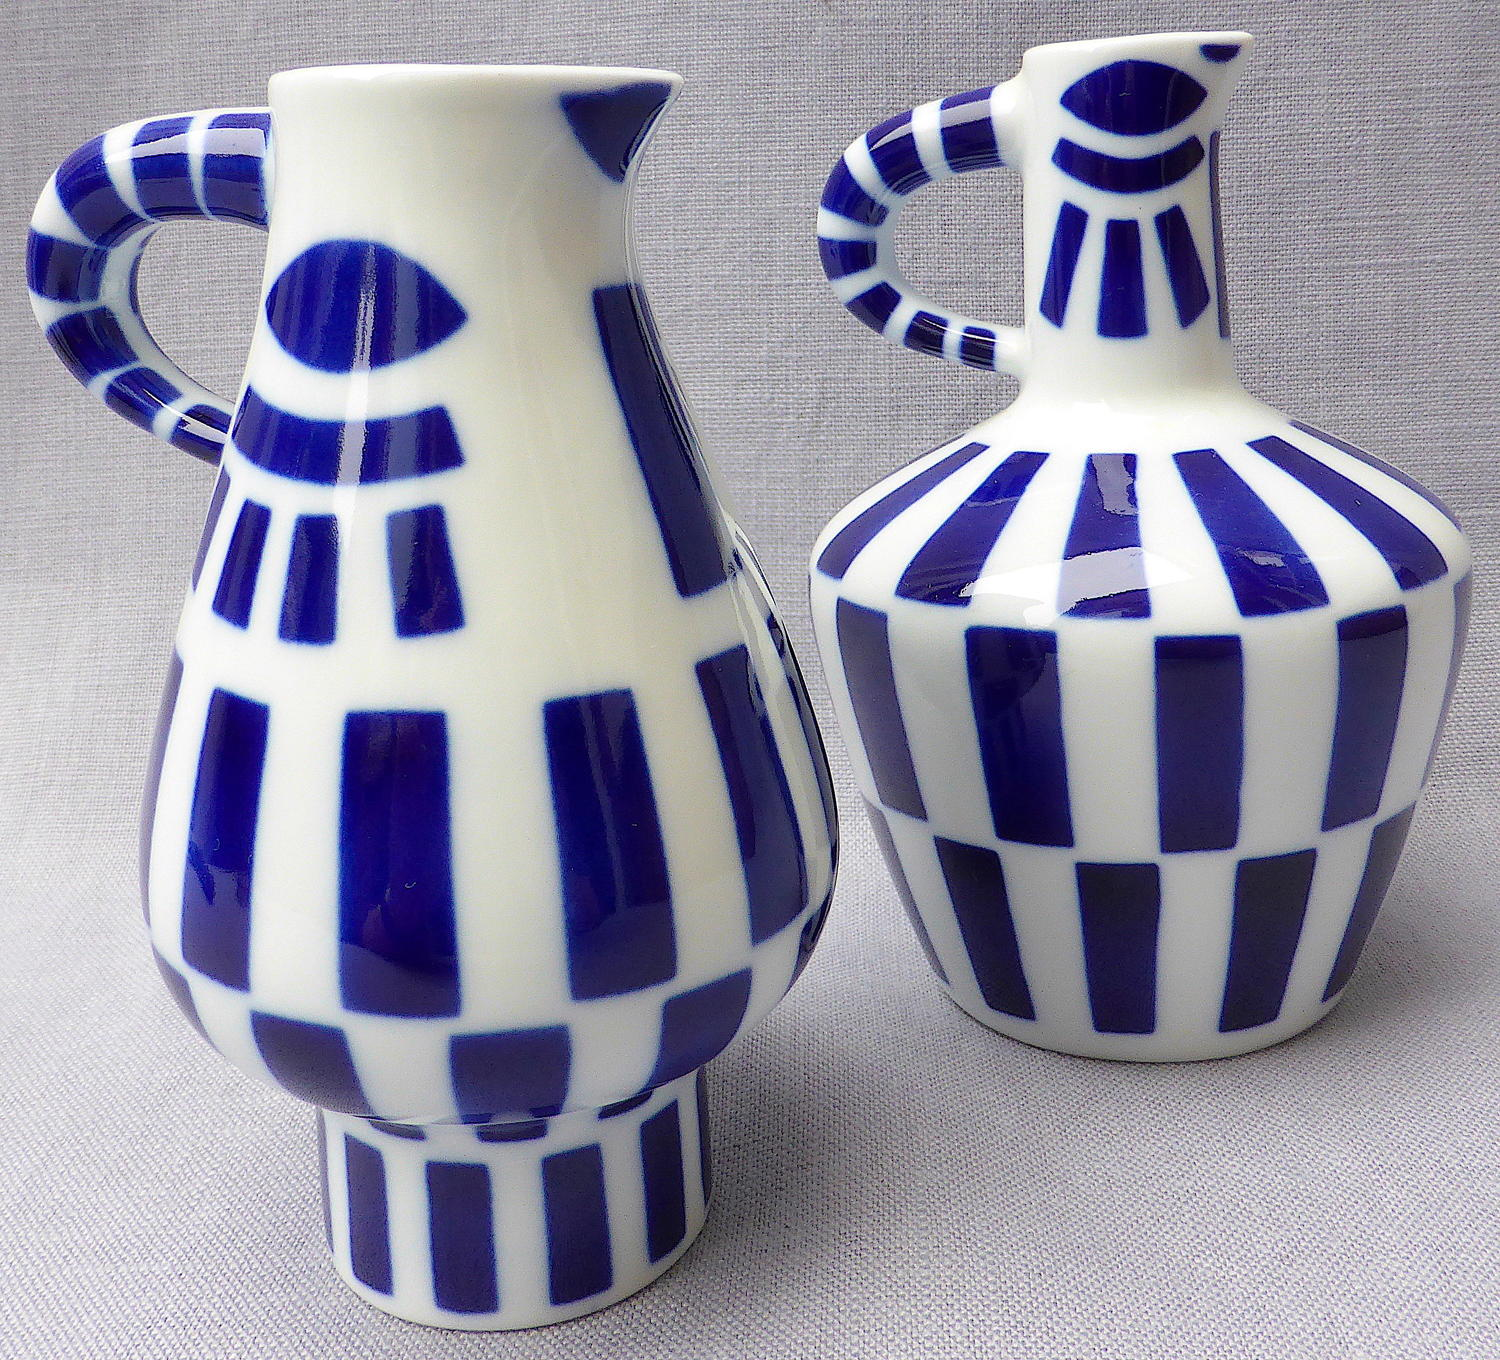 Two Sargadelos Paxaroforme stylised bird jugs